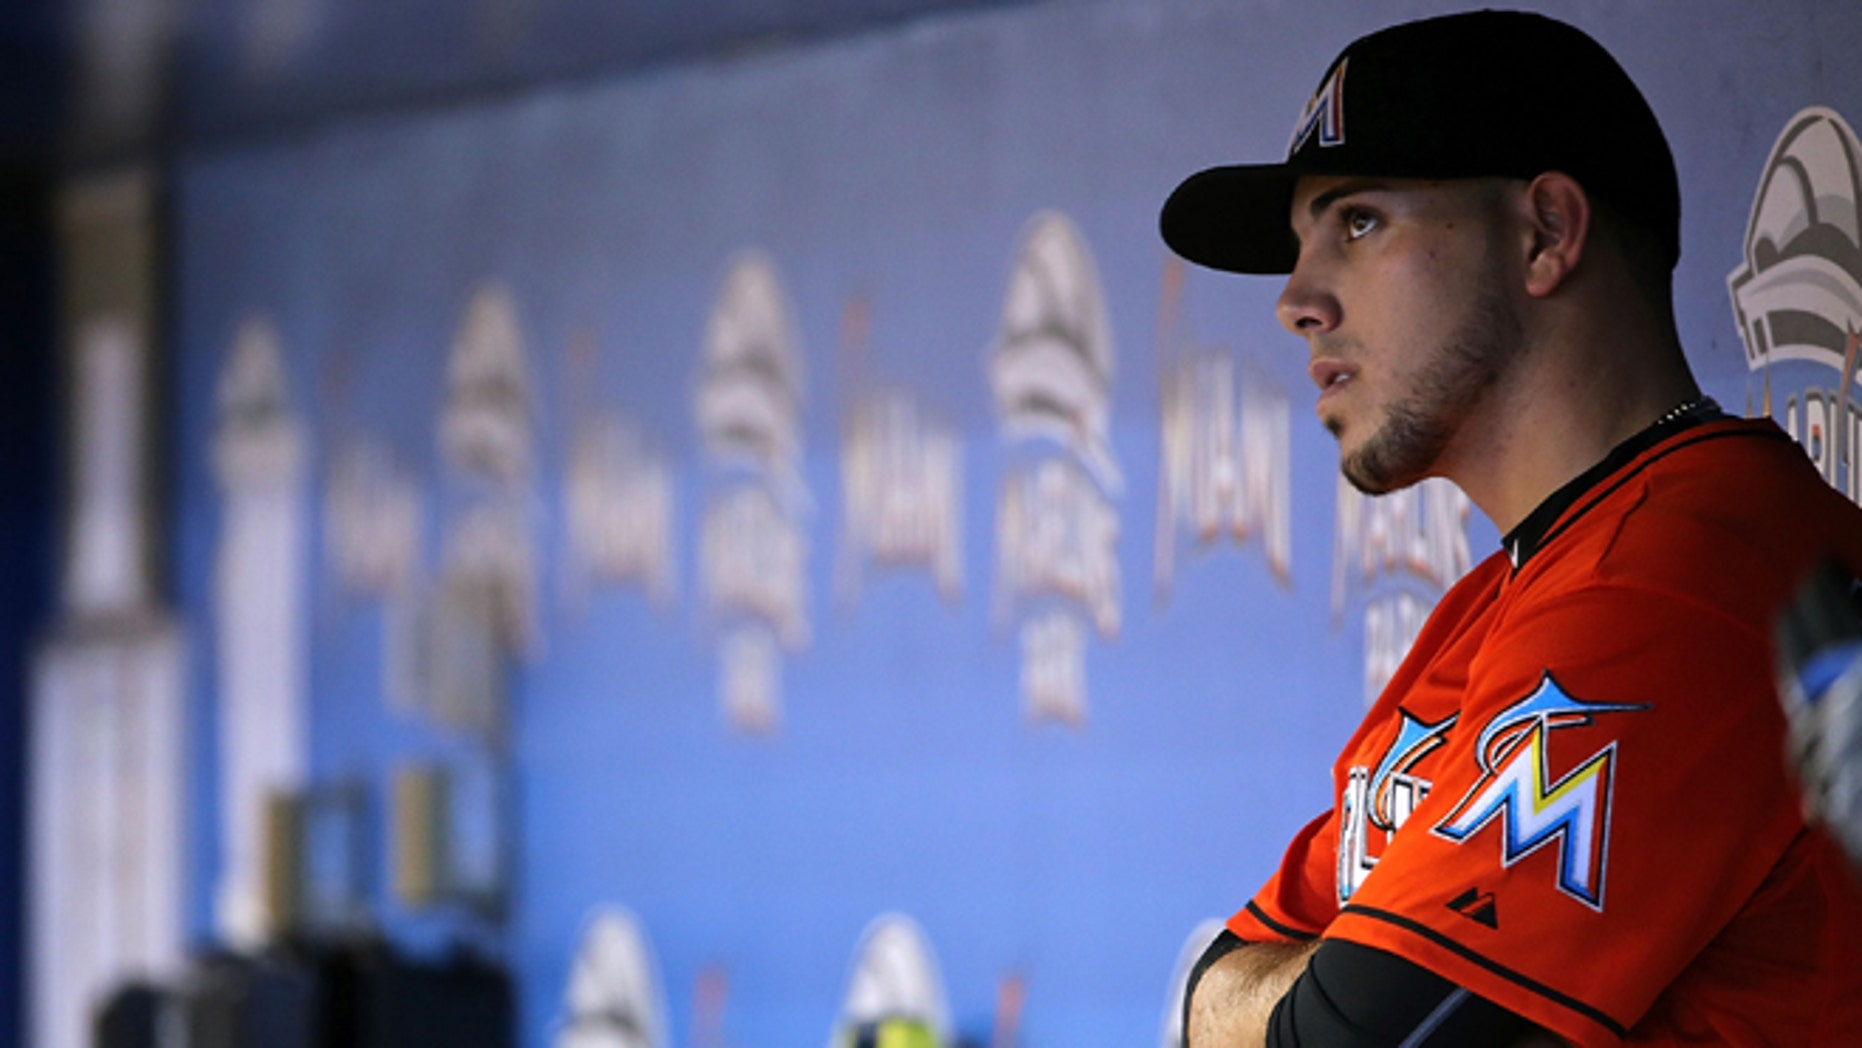 MIAMI, FL - JULY 02:  Jose Fernandez #16 of the Miami Marlins looks on during a game against the San Francisco Giants at Marlins Park on July 2, 2015 in Miami, Florida.  (Photo by Mike Ehrmann/Getty Images)